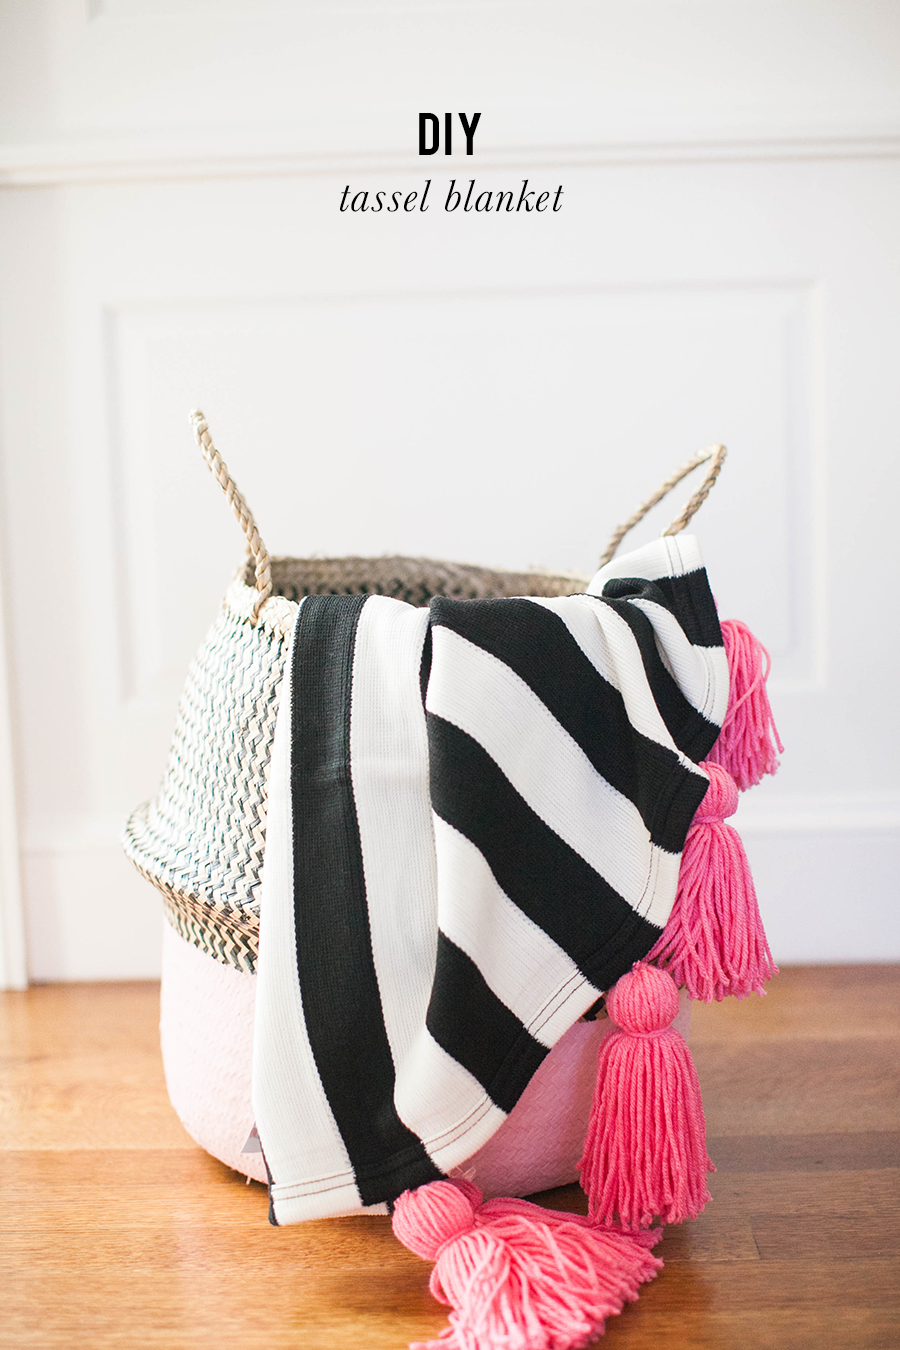 Read More on SMP: http://www.stylemepretty.com/living/2016/05/01/the-diy-tassel-blanket-youll-want-to-keep-out-all-year-round/